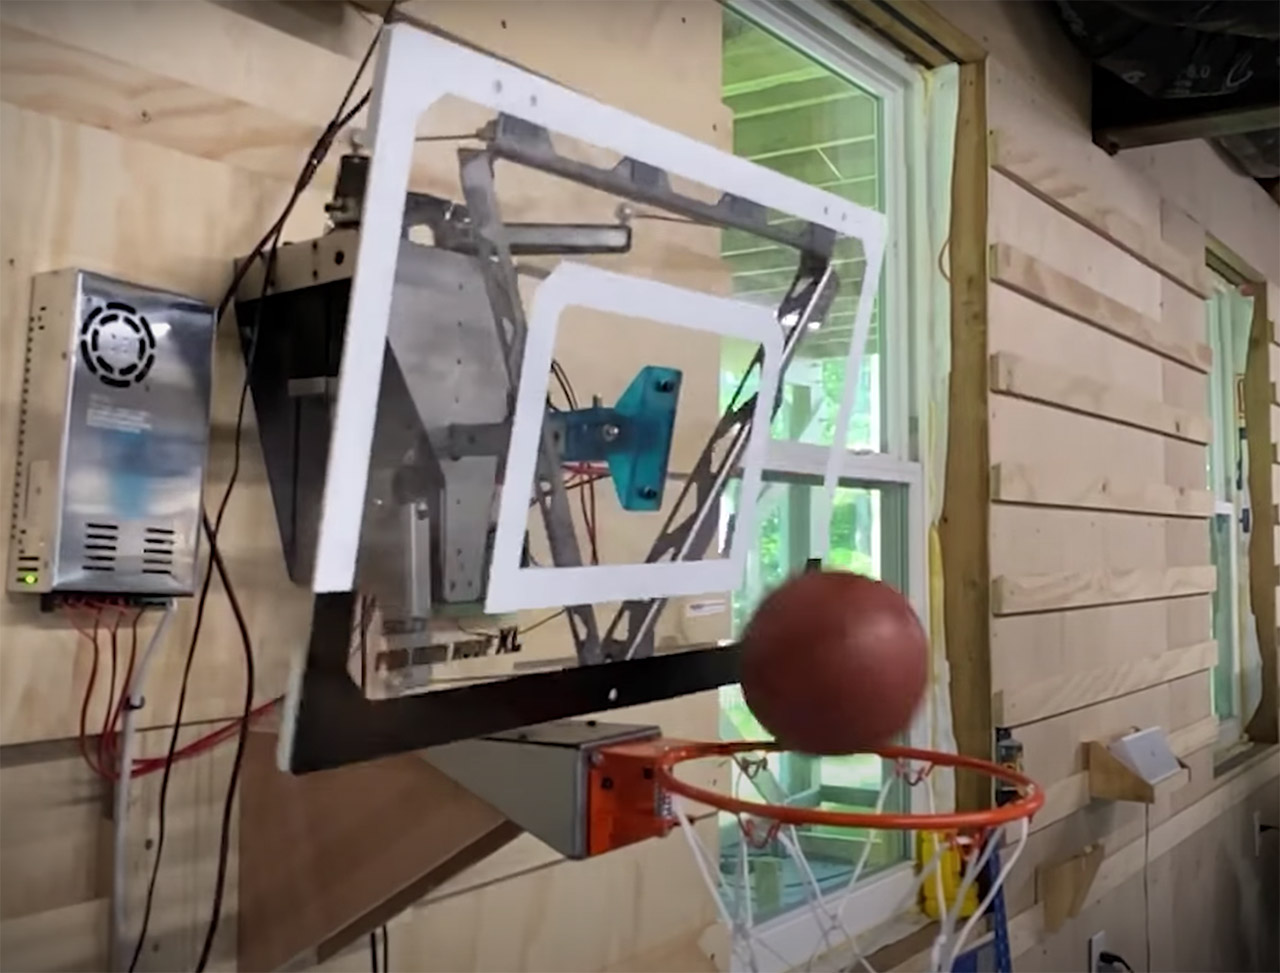 Robotic Basketball Hoop Can't Miss